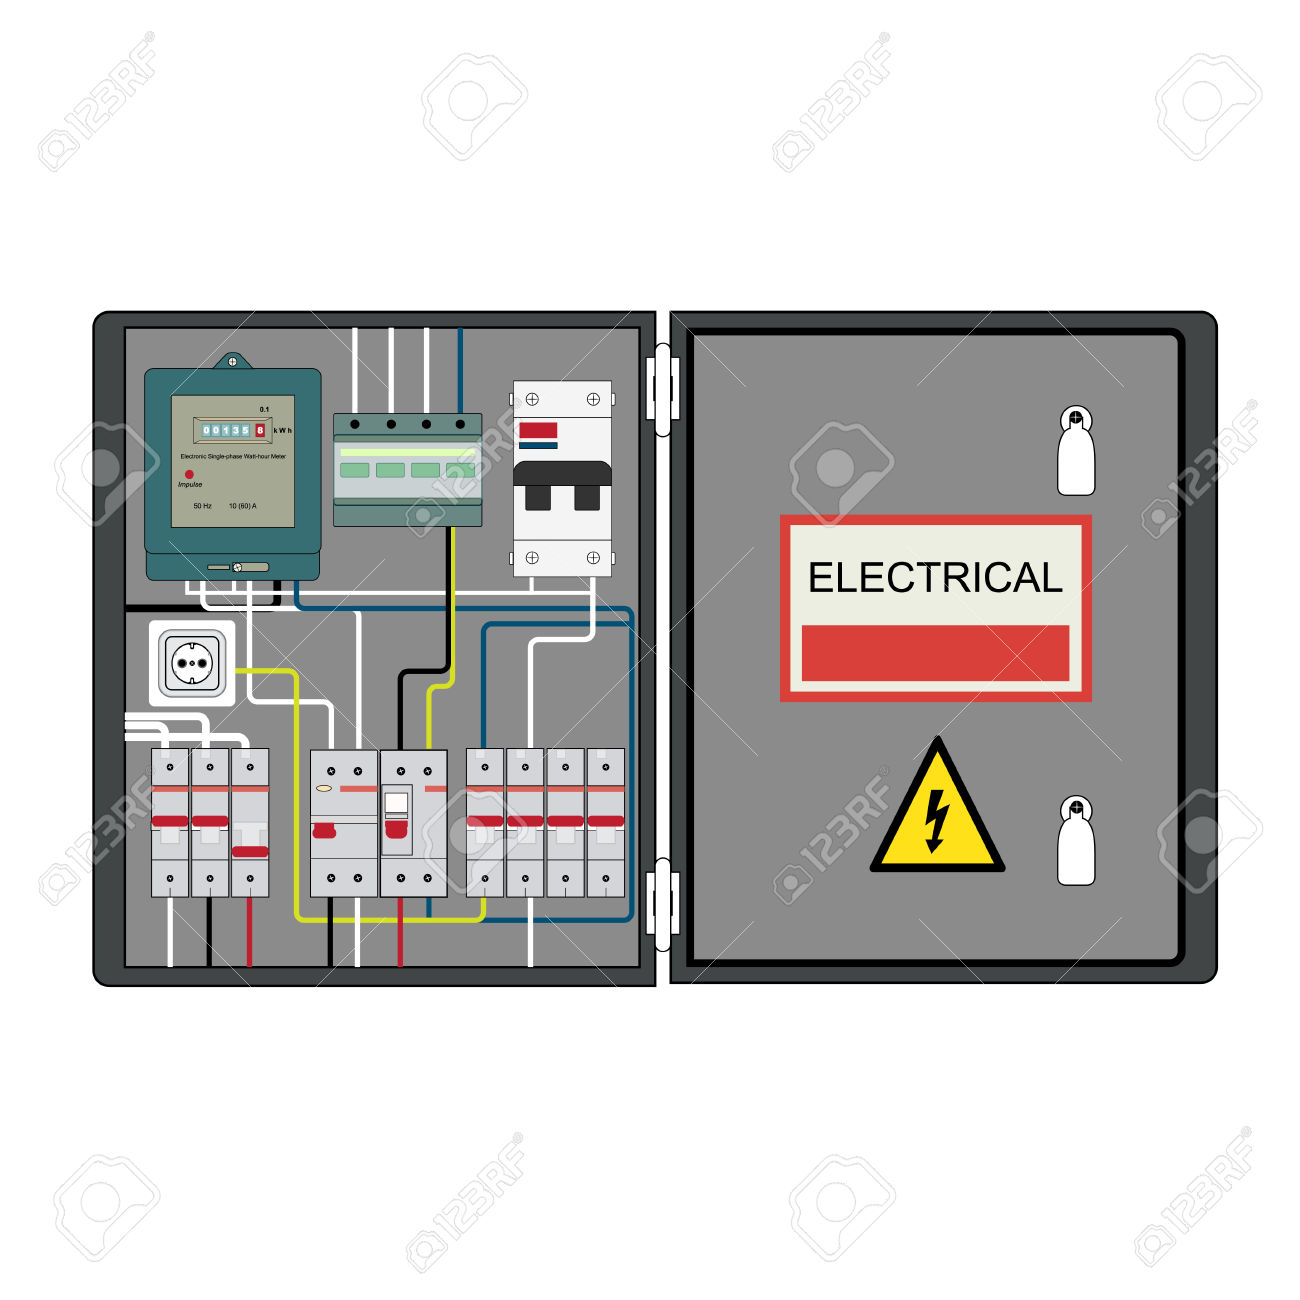 Picture Of The Electrical Panel, Electric Meter And Circuit.